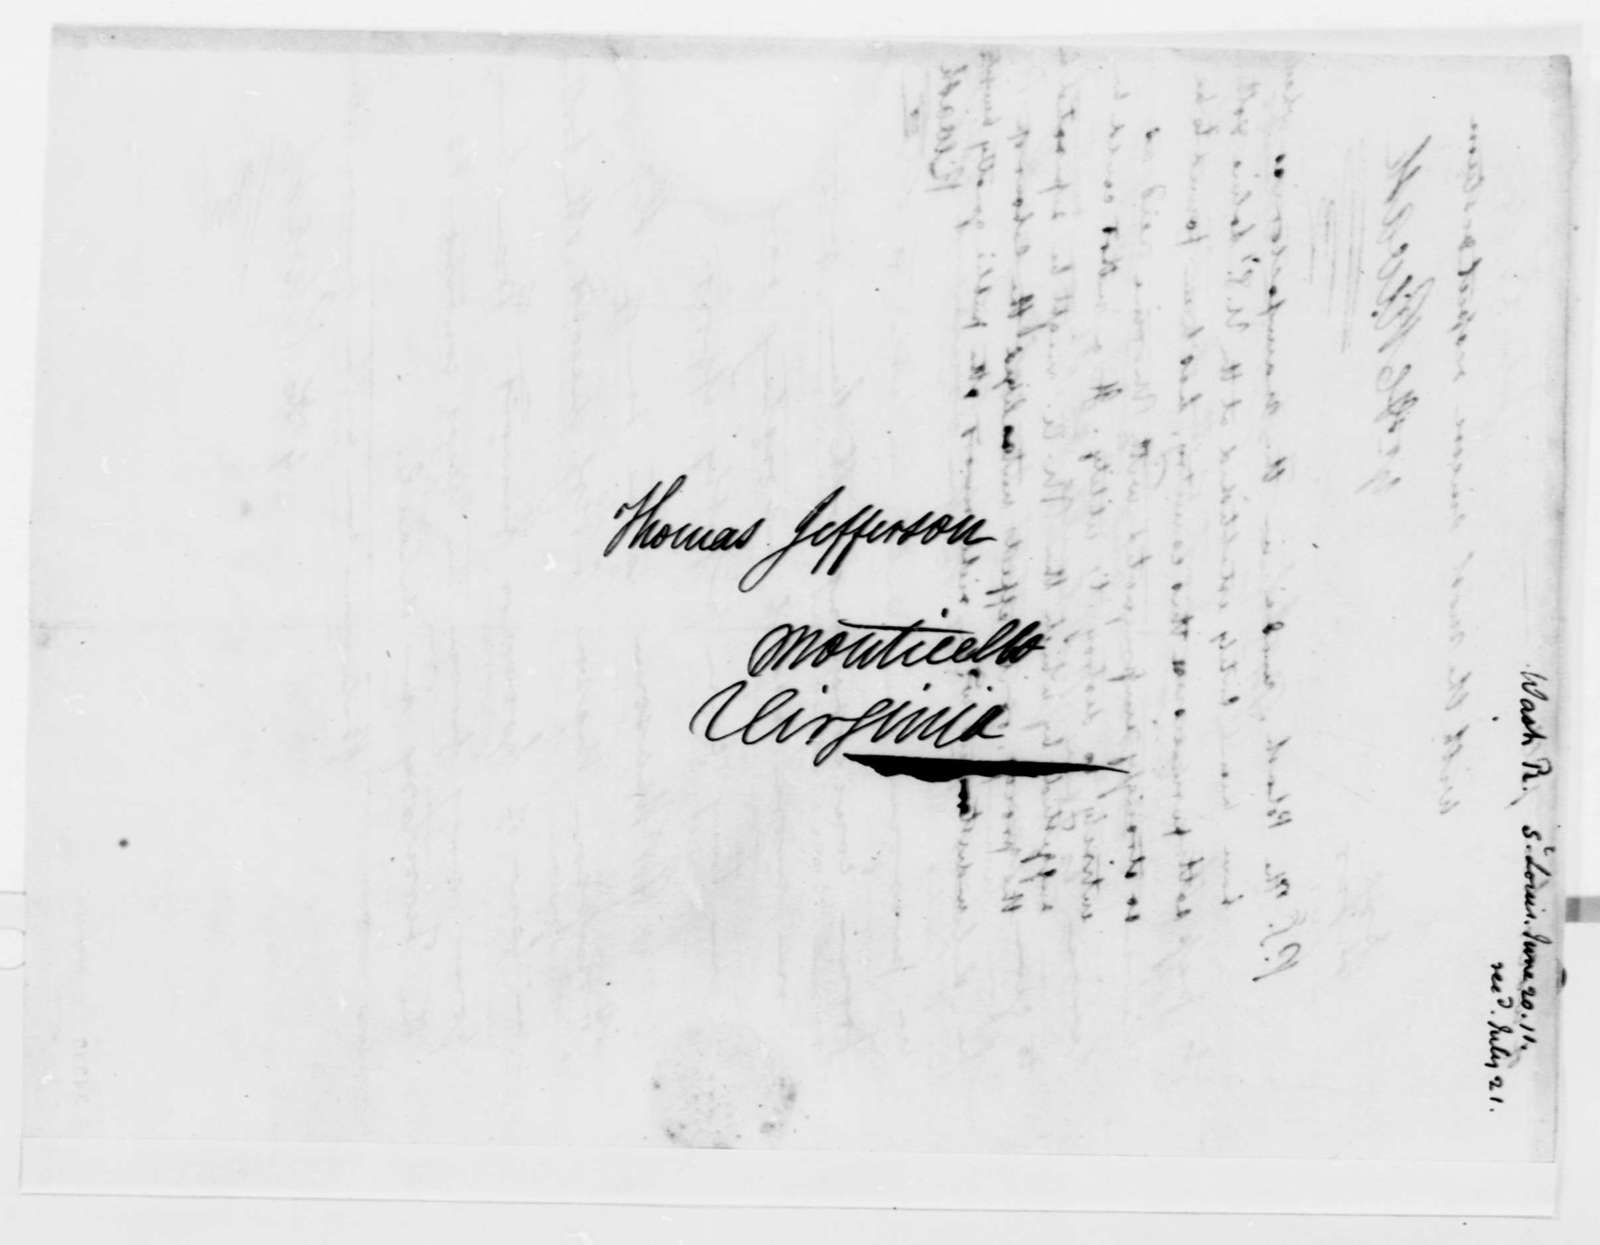 Robart Wash to Thomas Jefferson, June 20, 1811